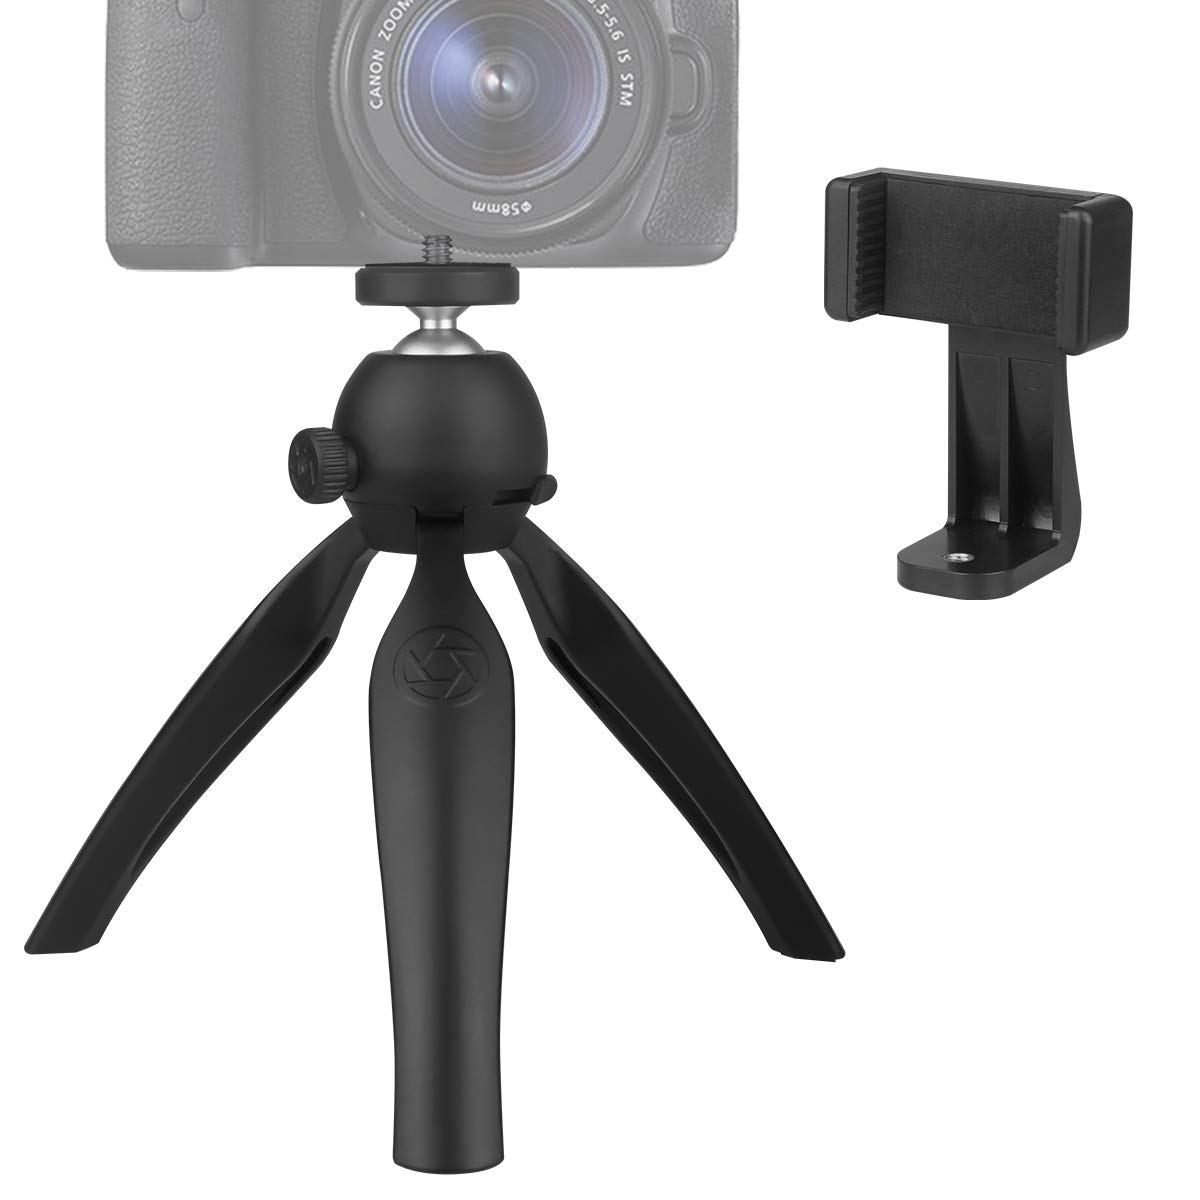 Mini Camera Tripod Portable Phone Tripod for iPhone Digital Video Camera Sports Camcorder with 360 Degree Adjustable Flexible Clamp Suitable for Travel Table Desk